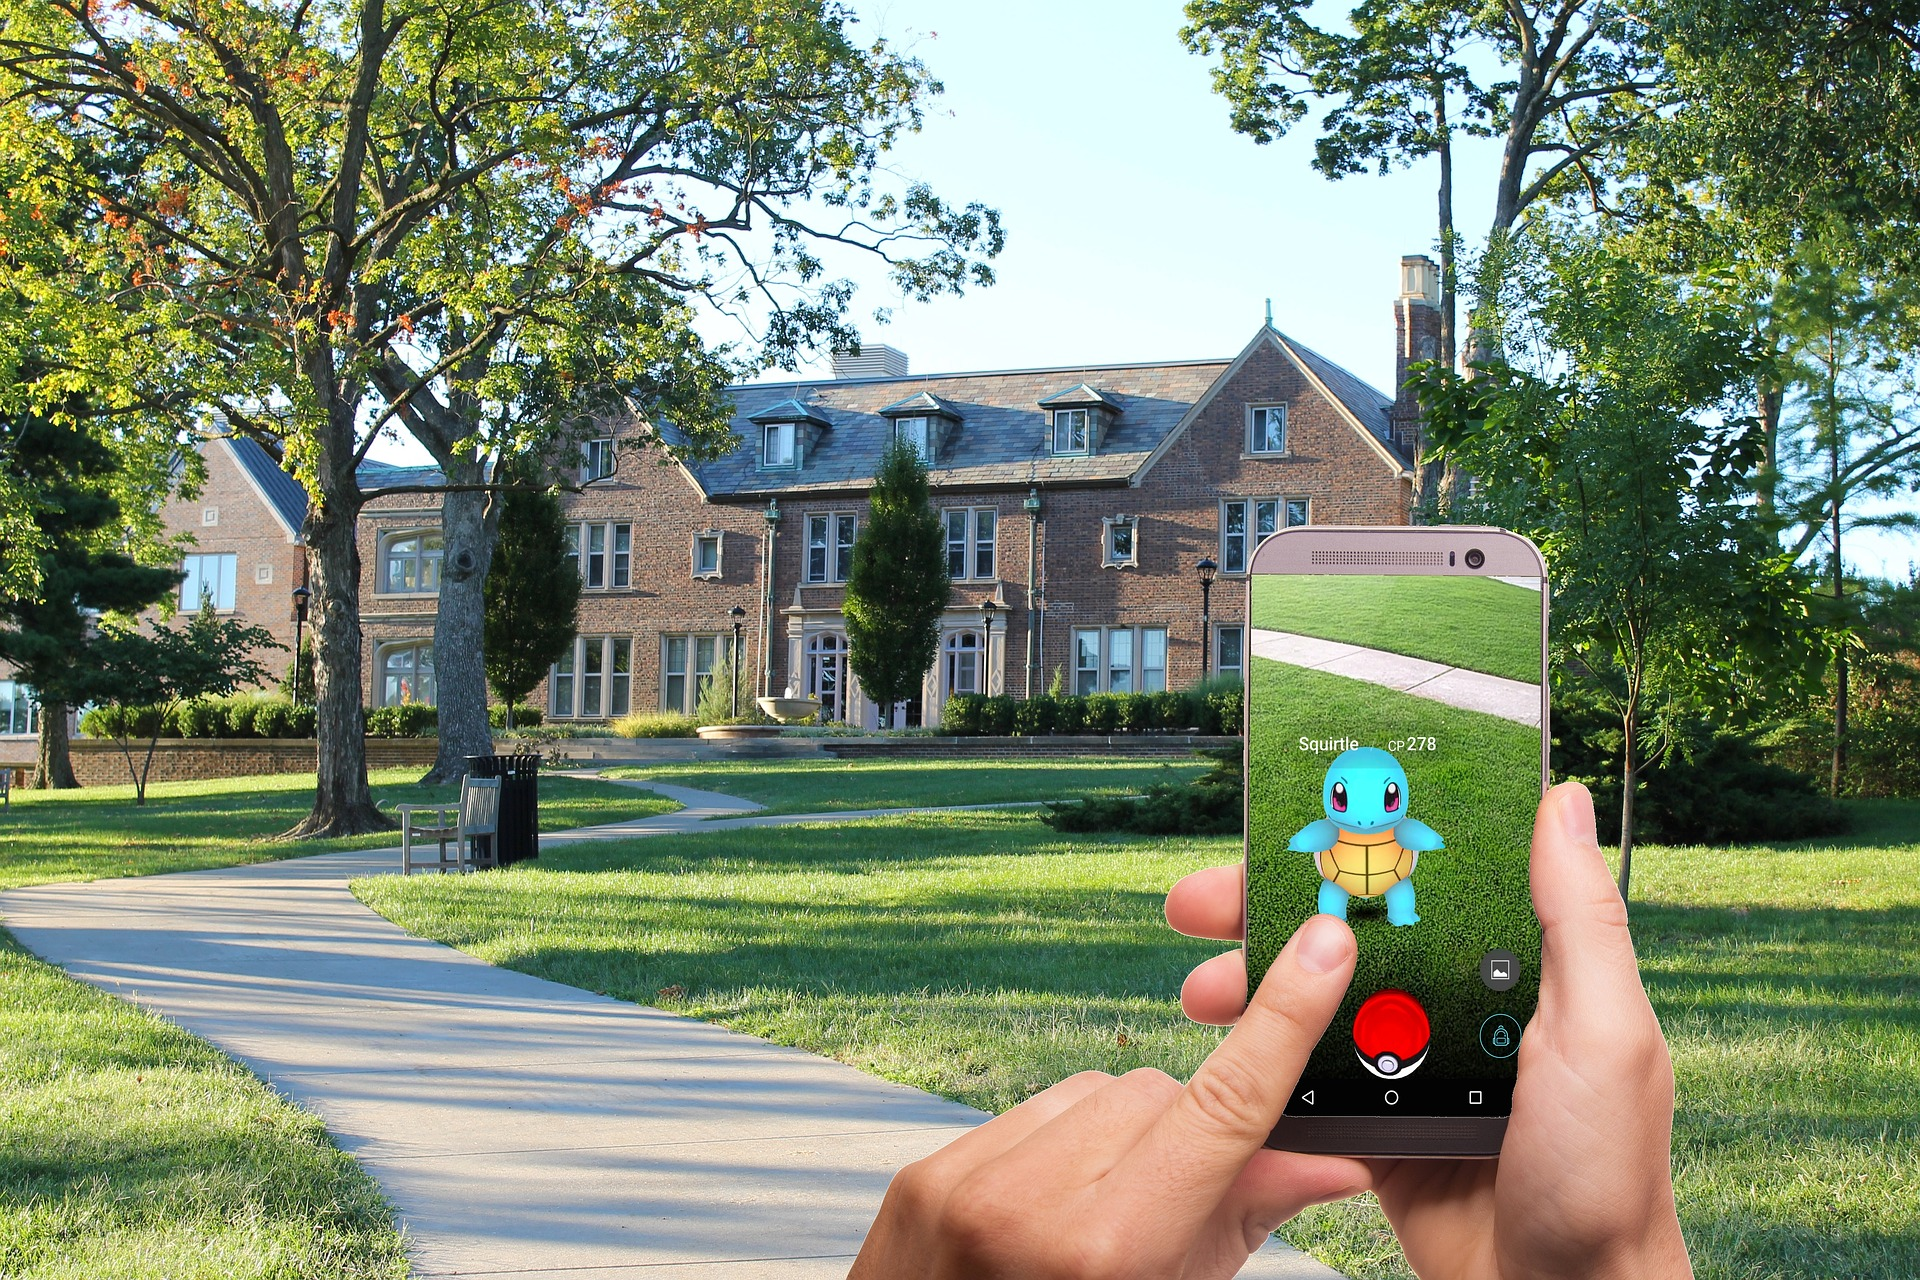 https://pixabay.com/en/pokemon-go-pokemon-street-lawn-1569794/